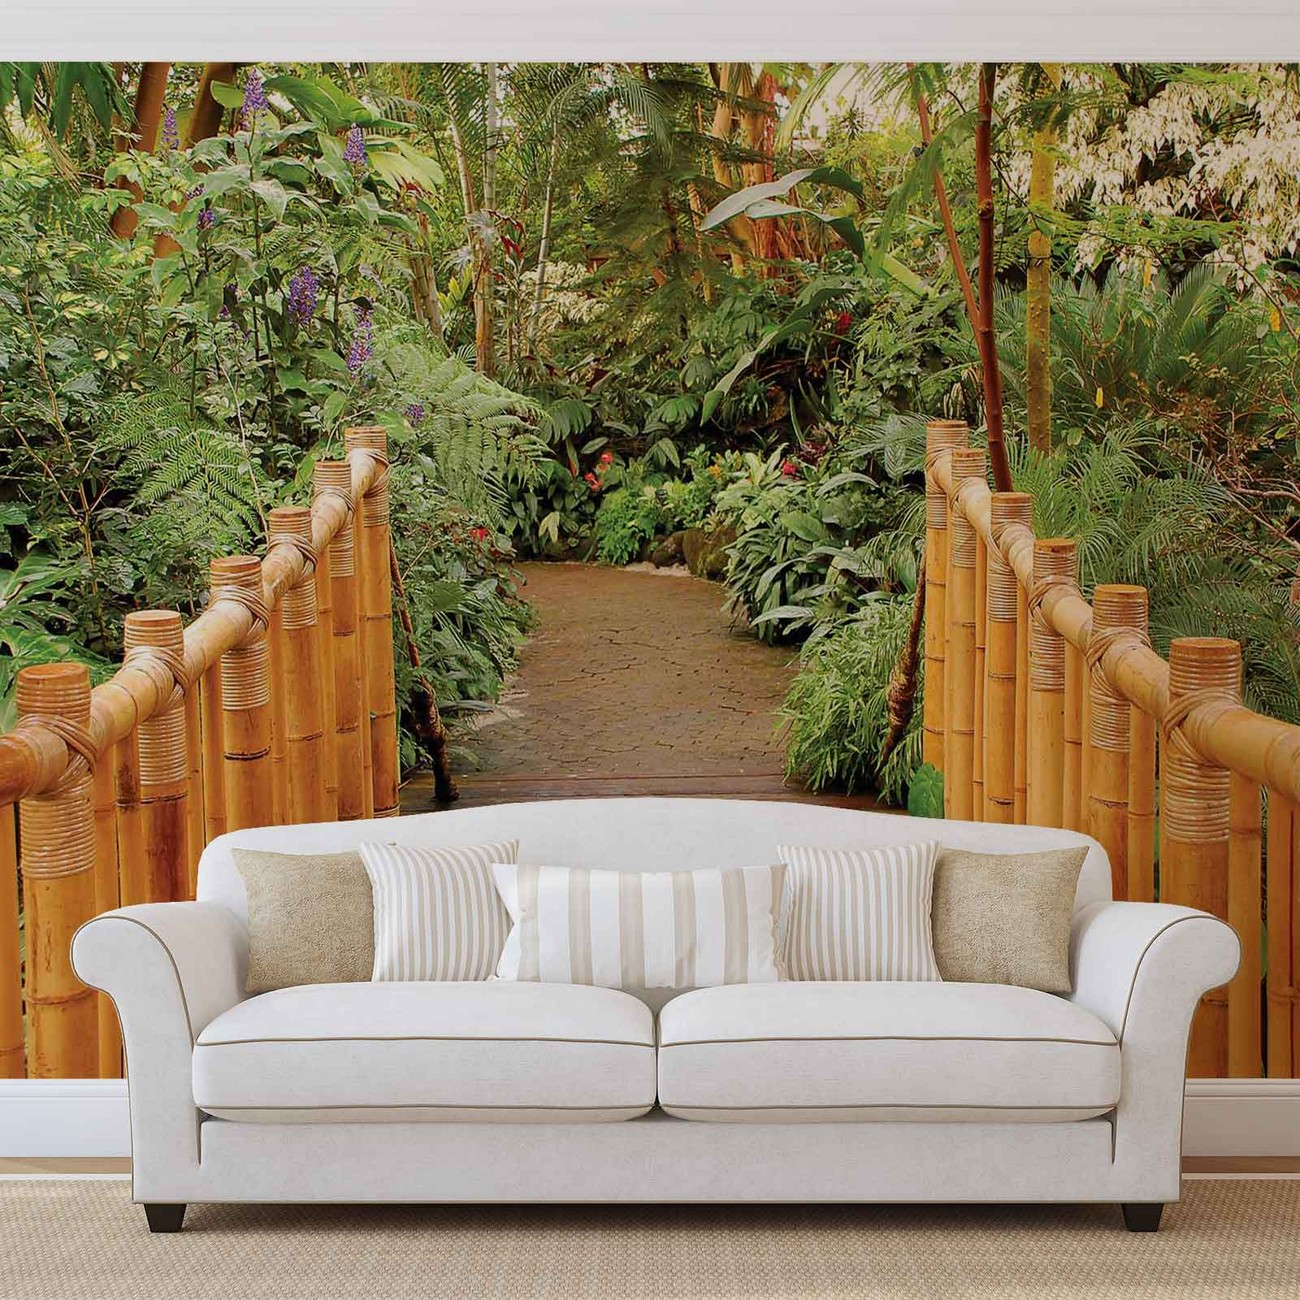 Forest nature path bamboo wall paper mural buy at for Bamboo mural walls